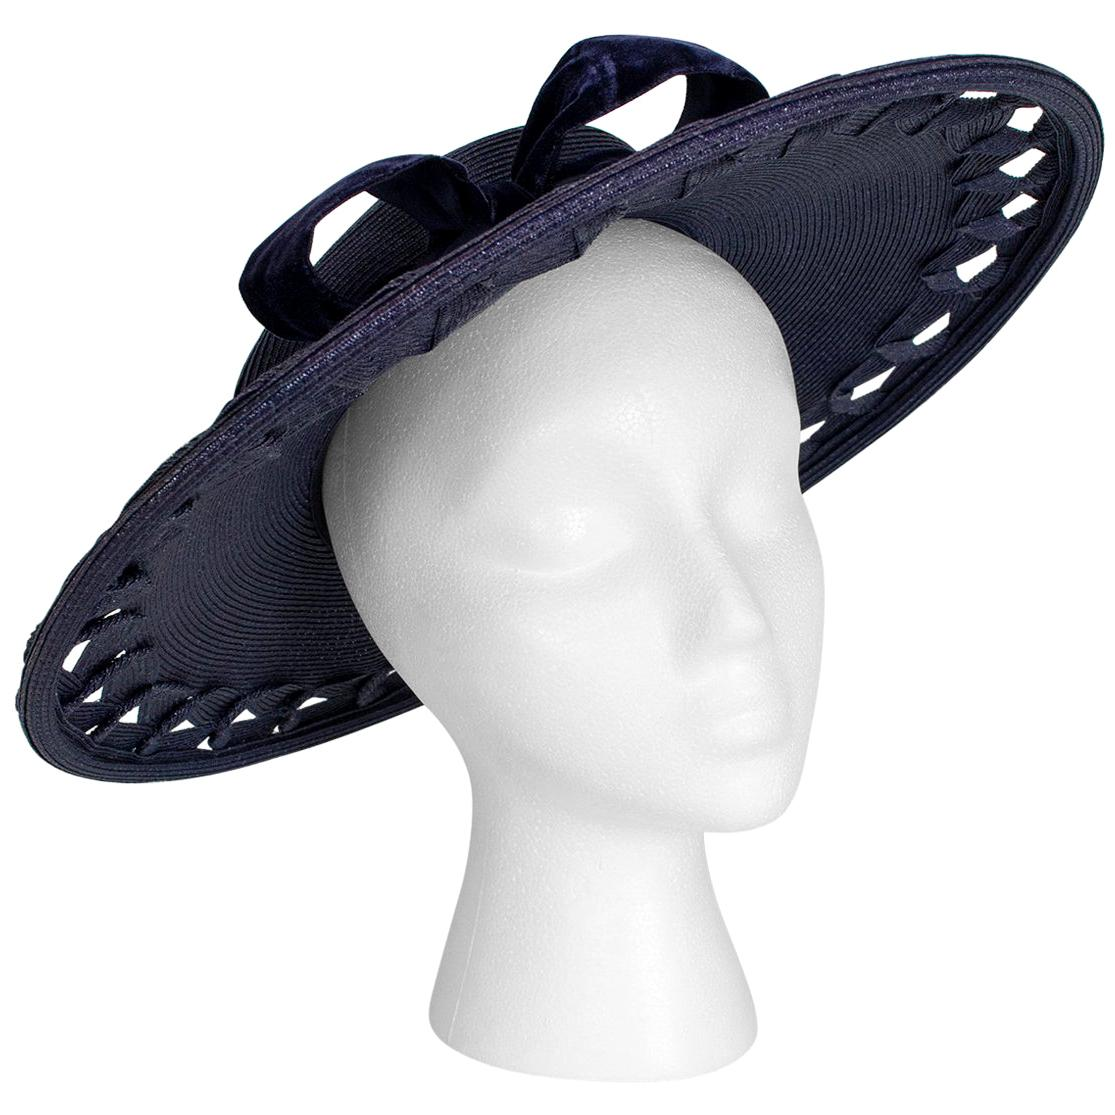 Navy Hole-Punched Straw Wide Brimmed Sun Hat, Oh La La! - Small, 1950s